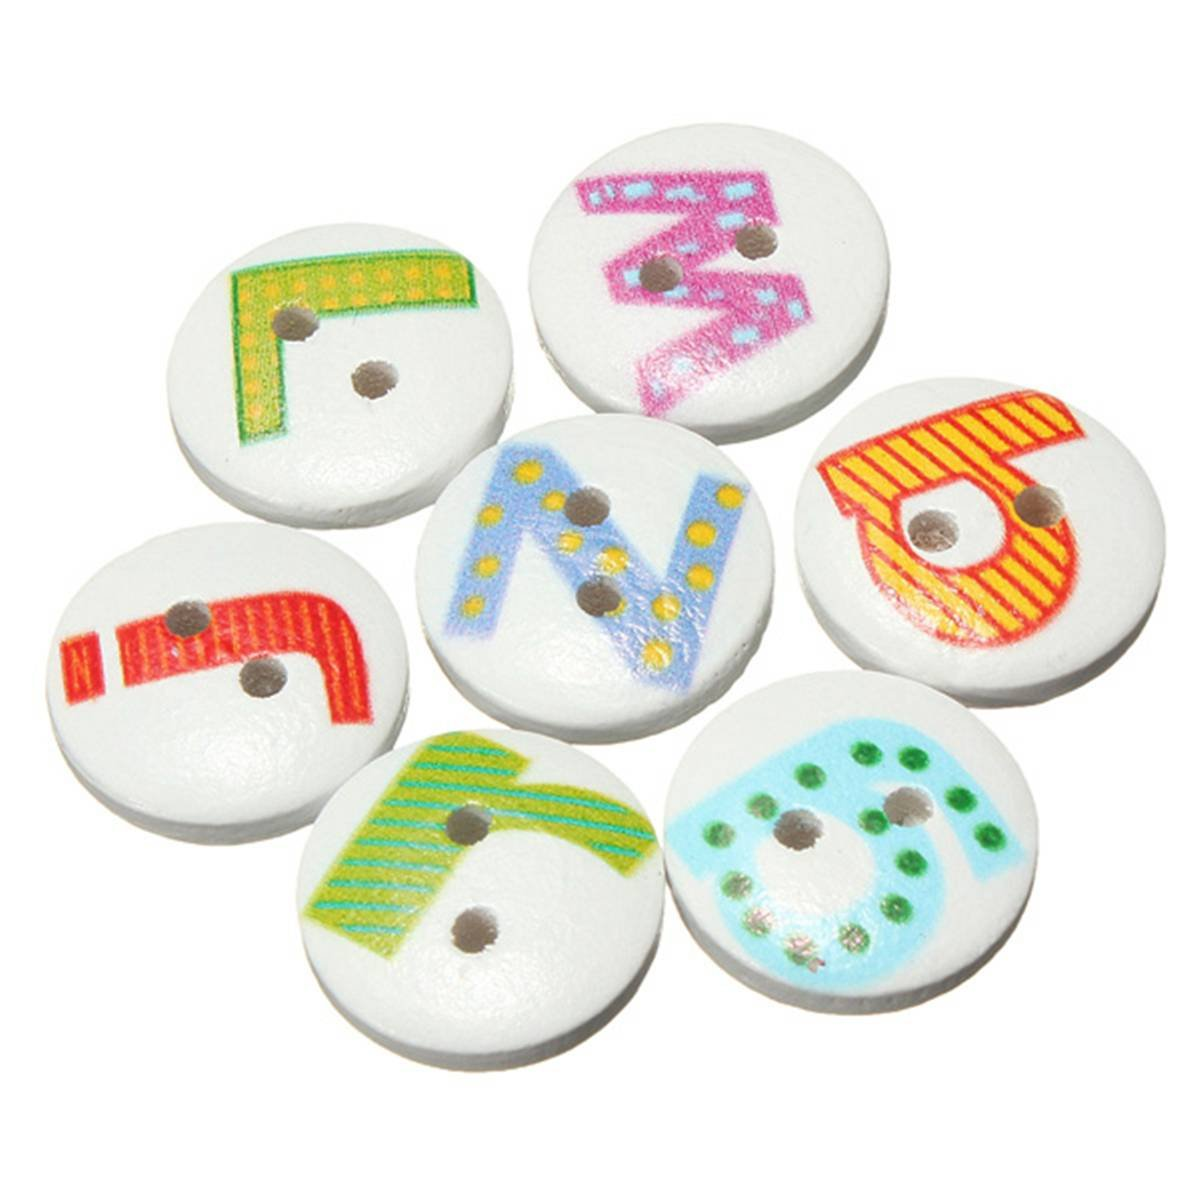 PHFU 100Pcs Mixed Painted Letter Alphabet Wooden Sewing Button Scrapbooking